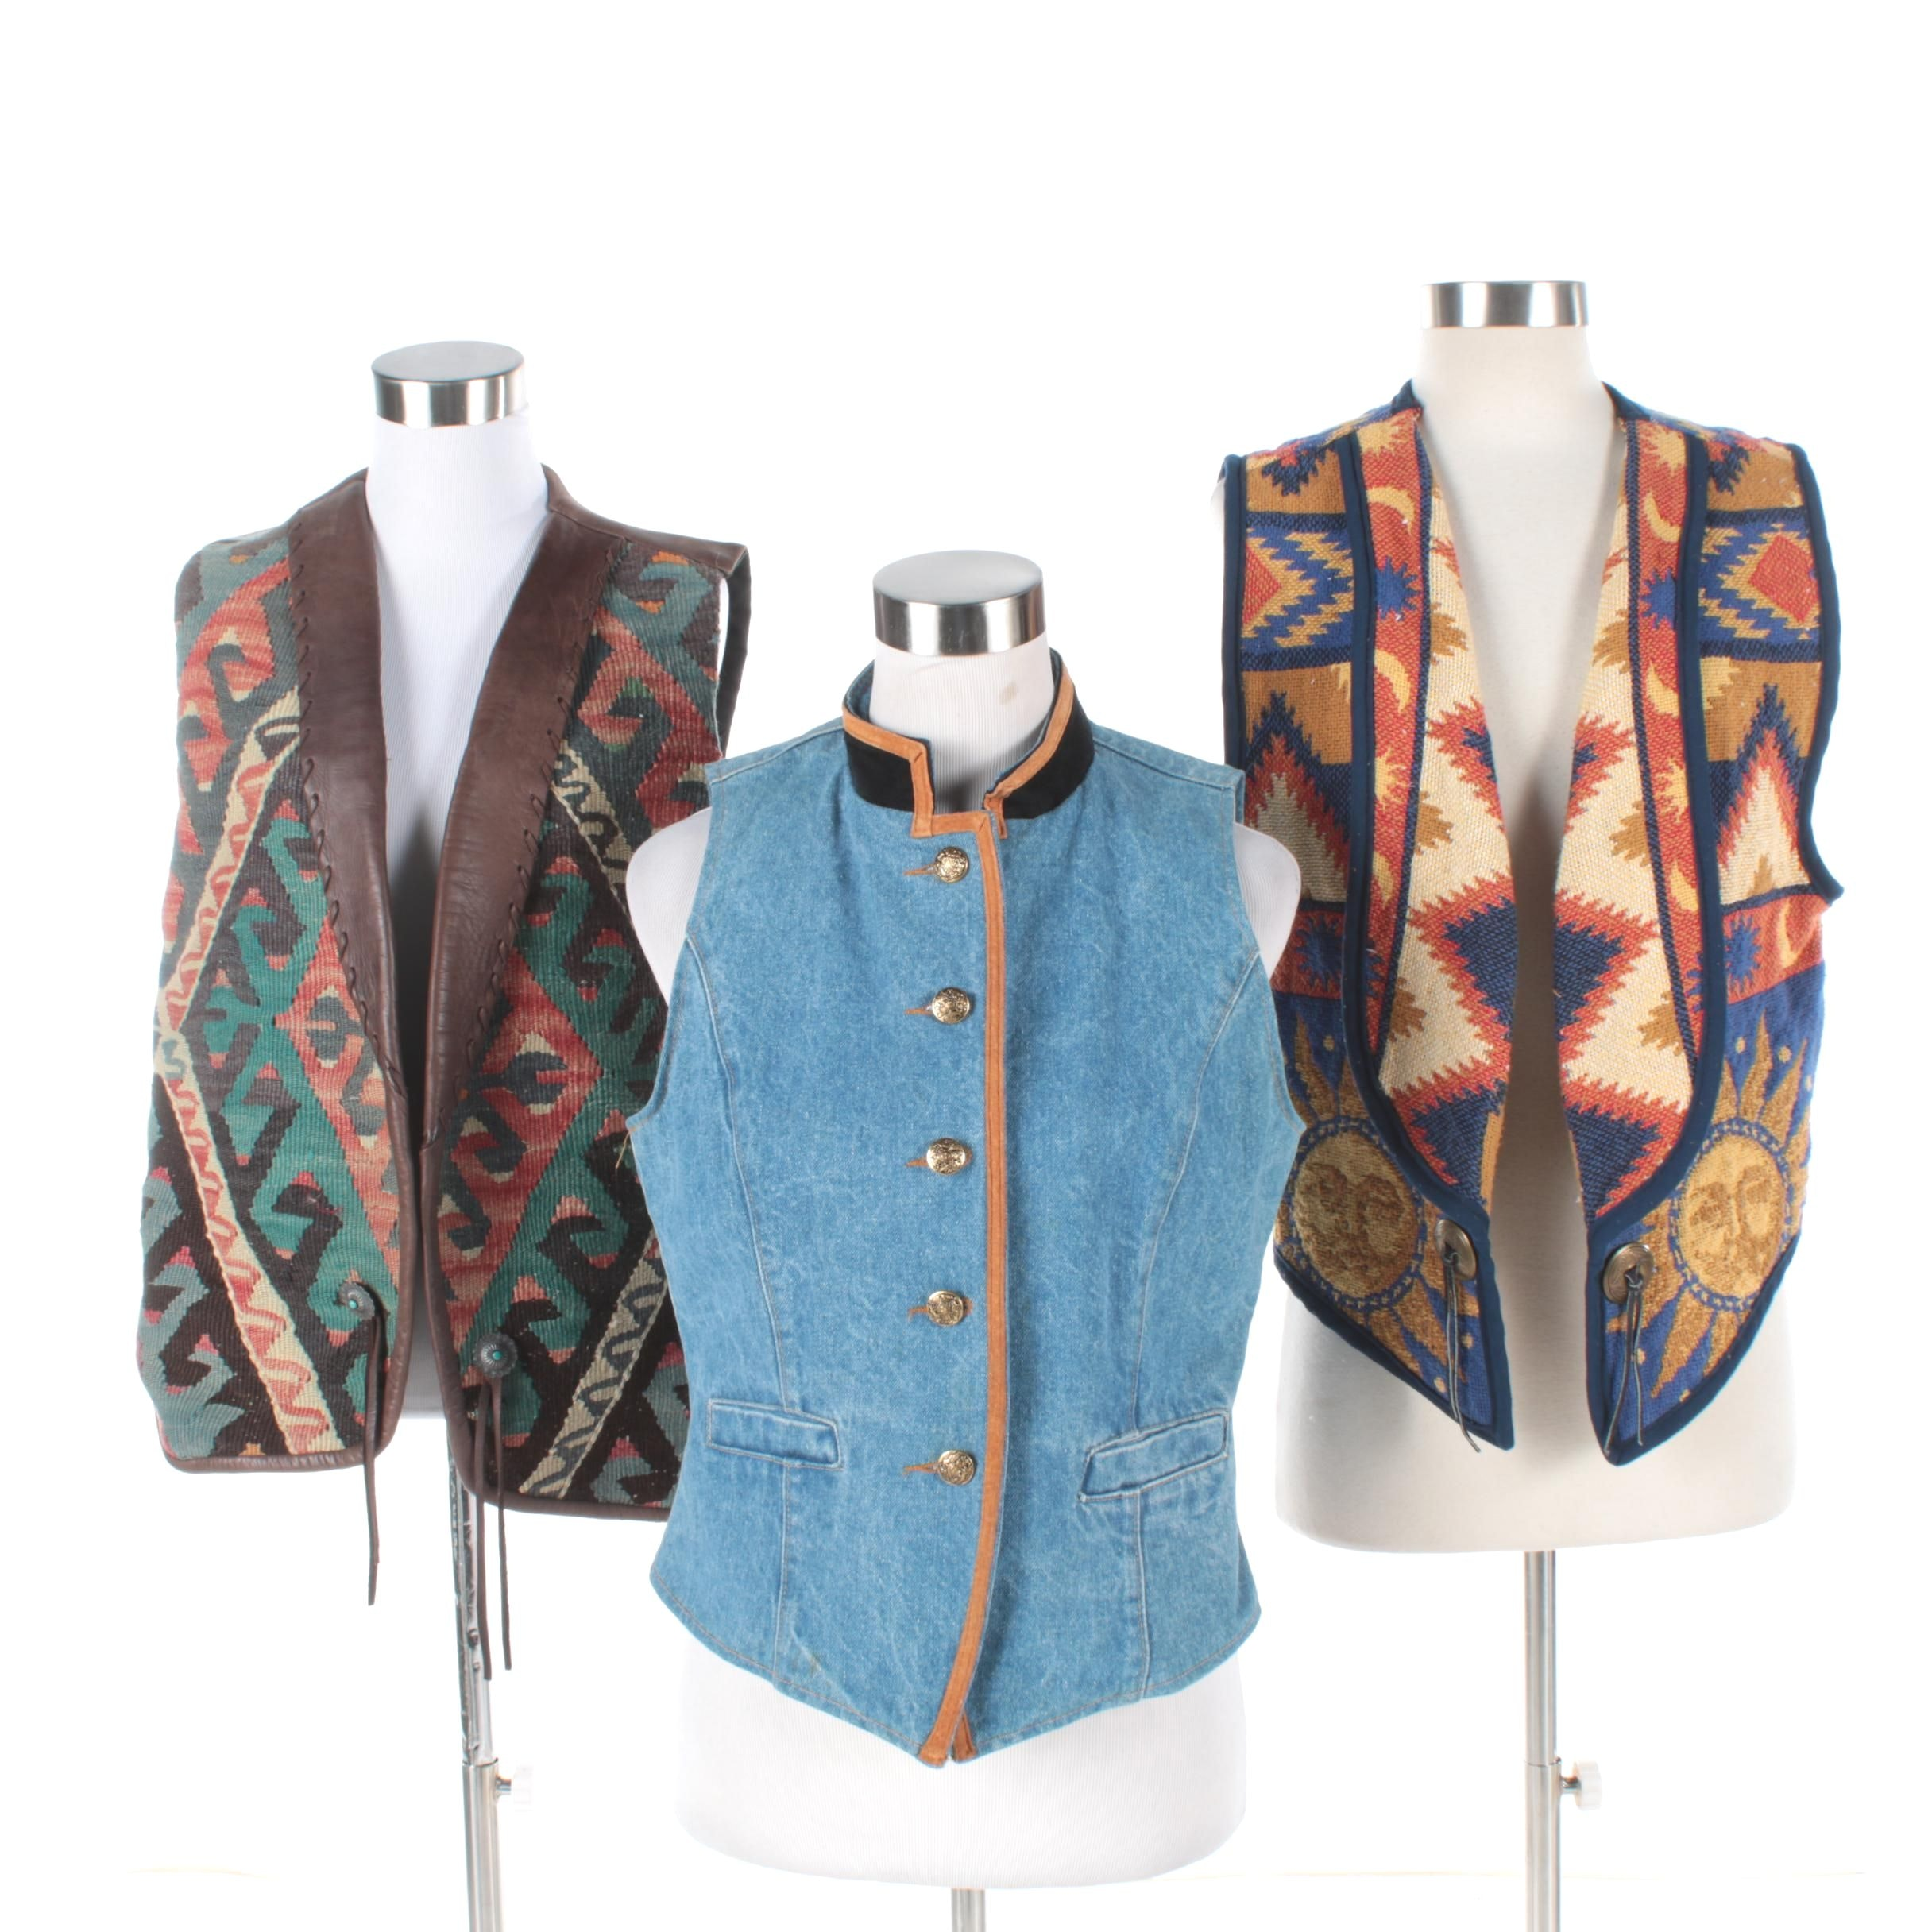 Women's Western Style Vests Featuring Handwoven Vest by Bouchér of Santa Fe